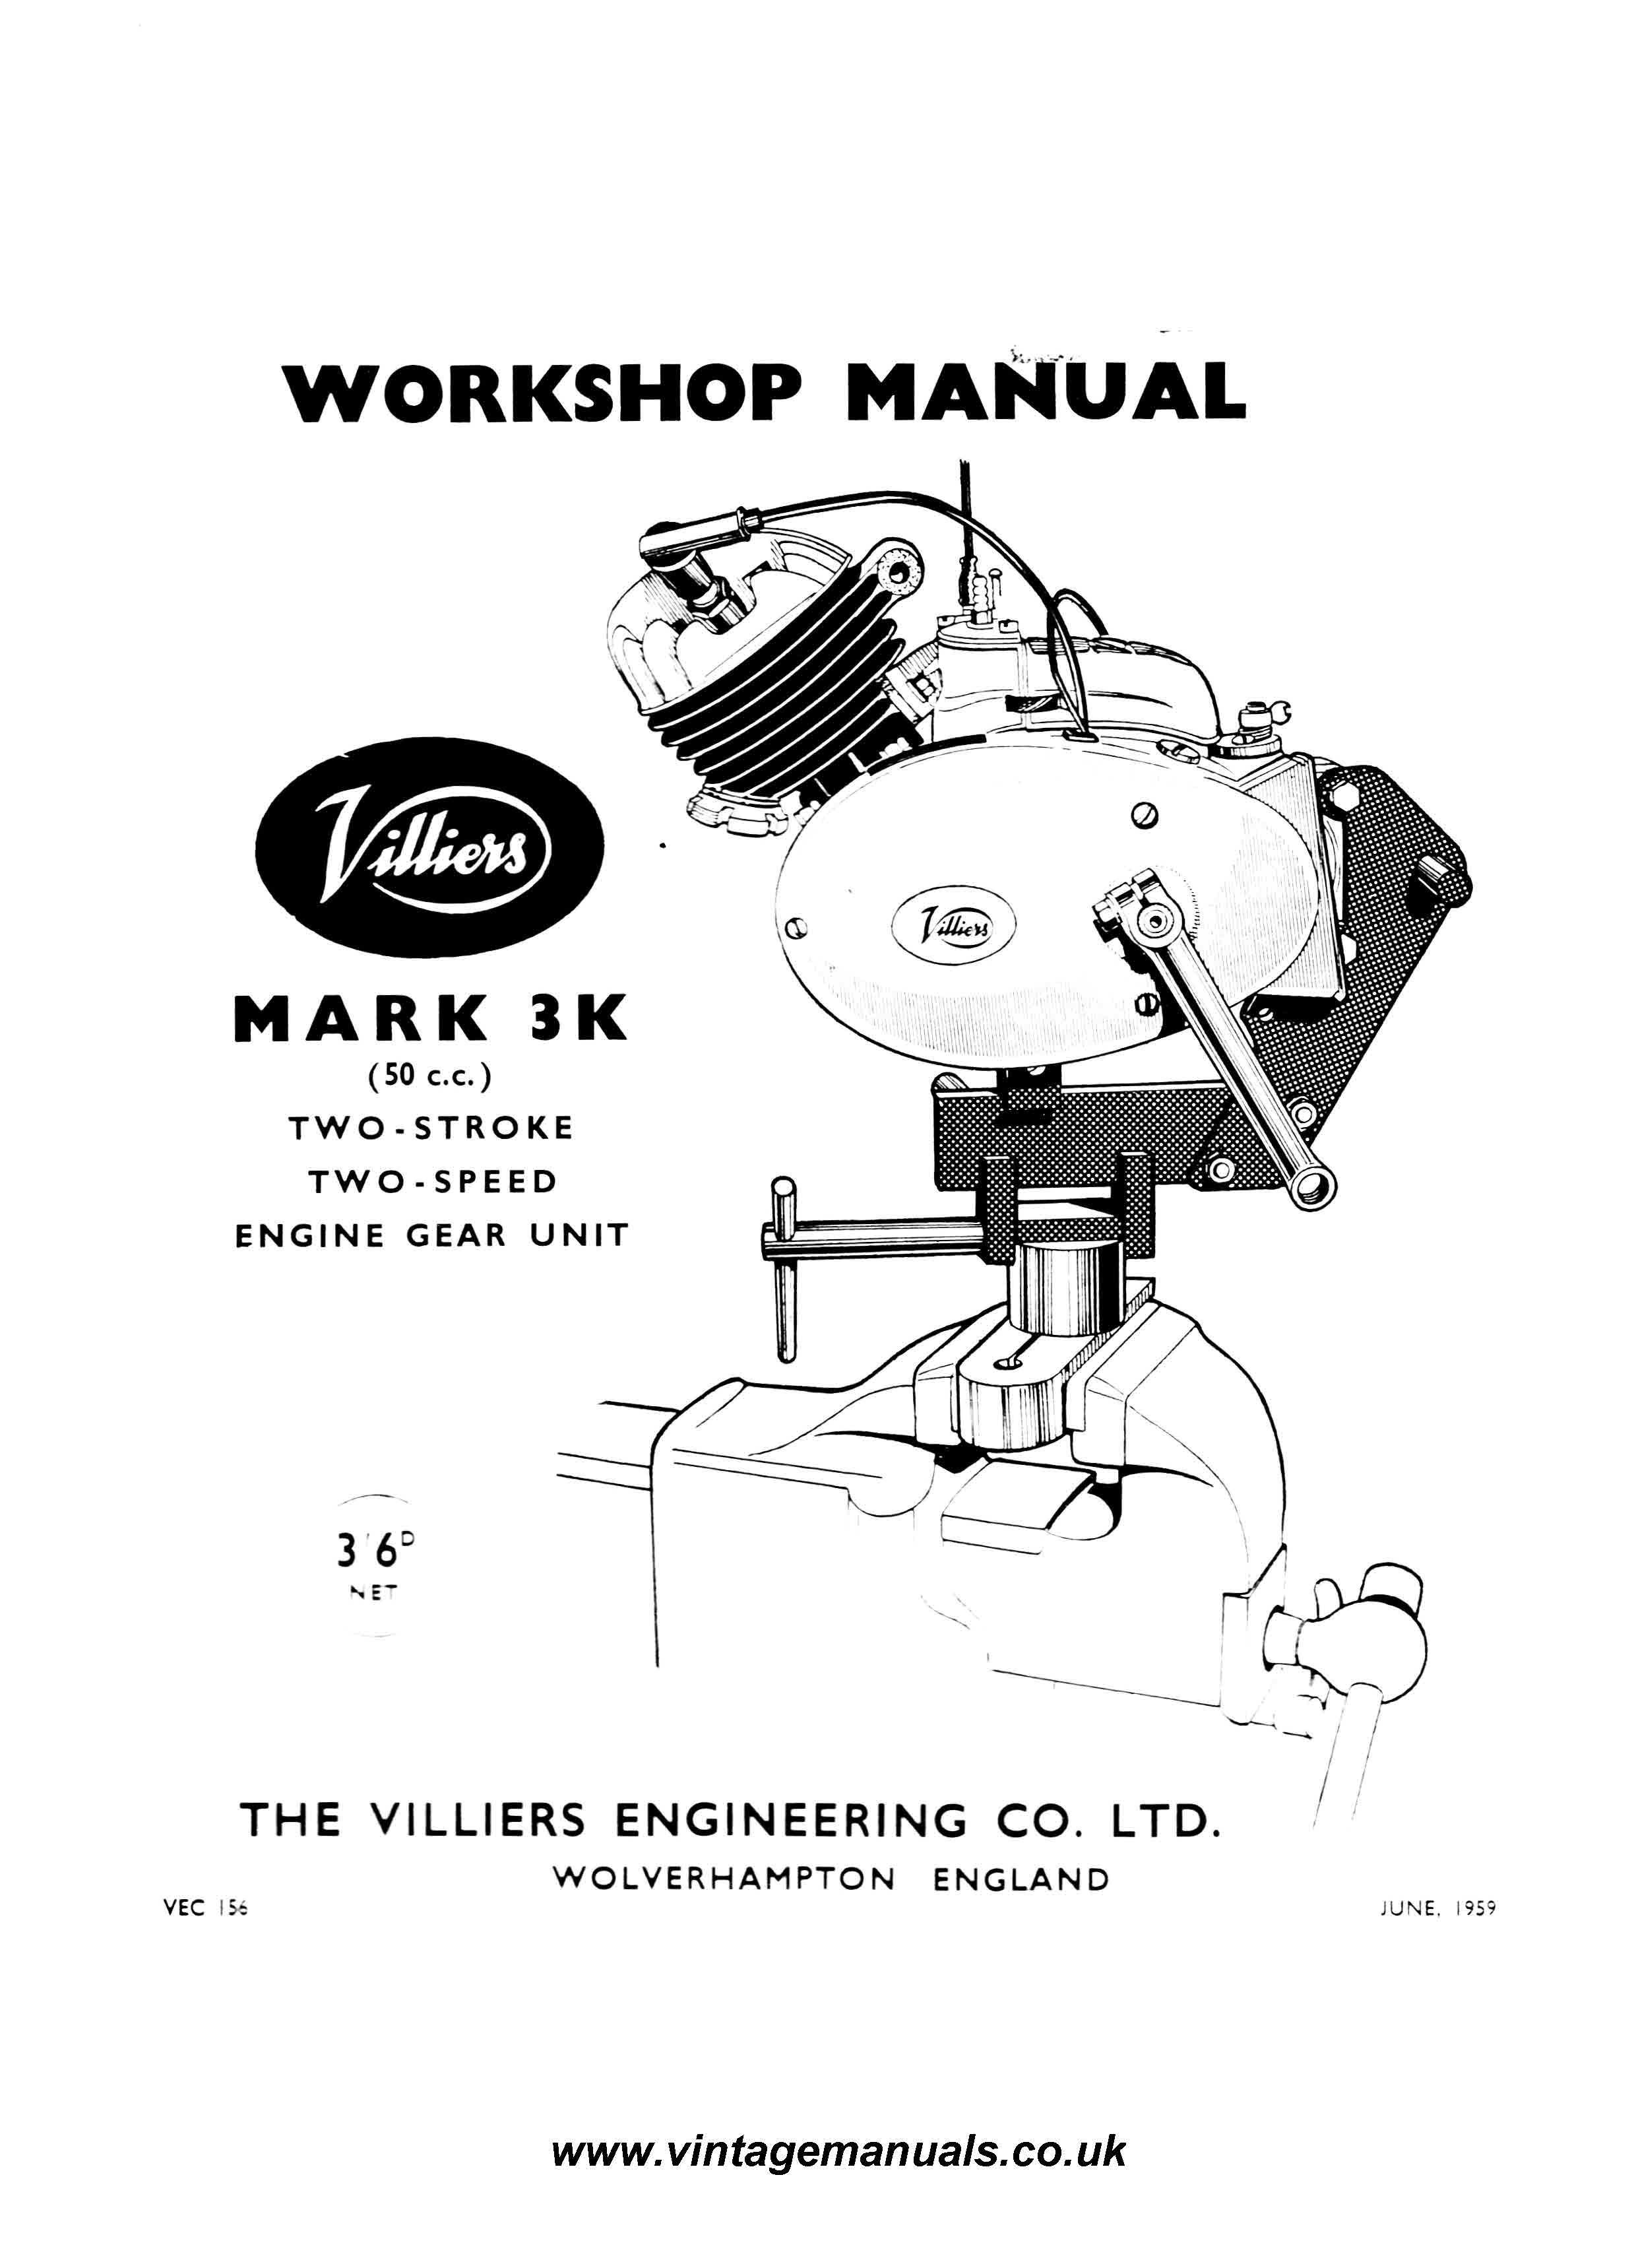 Villiers Mk3 F Motorcycle Engine Workshop Service and